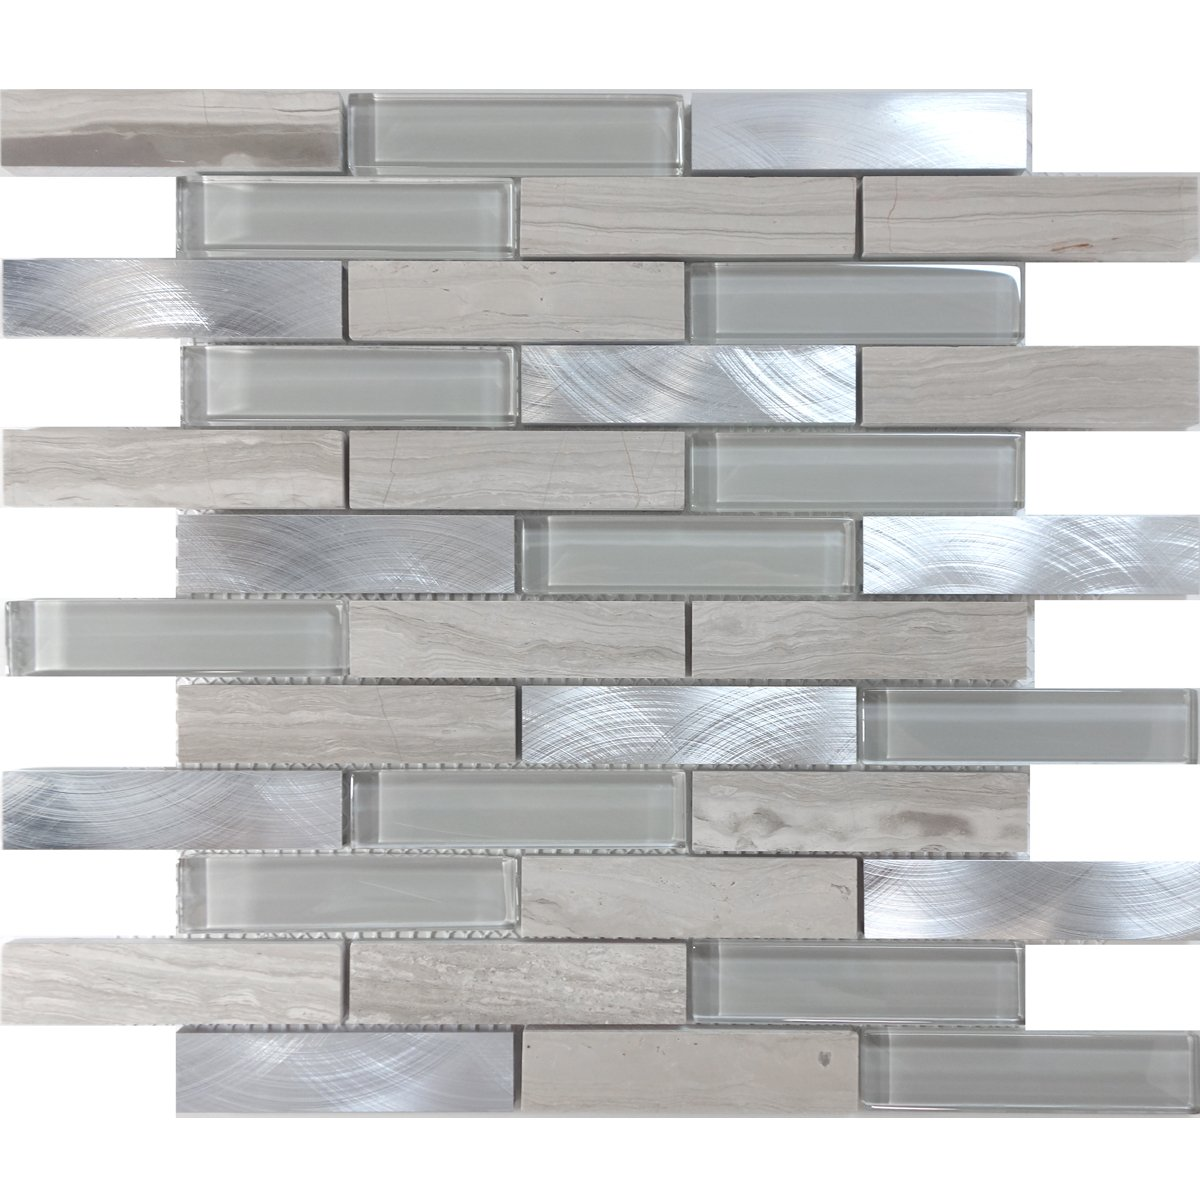 Modket TDH217MO White Oak Gray Marble Stone Blended Metallic Aluminum and Glass Mosaic Tile Backsplash